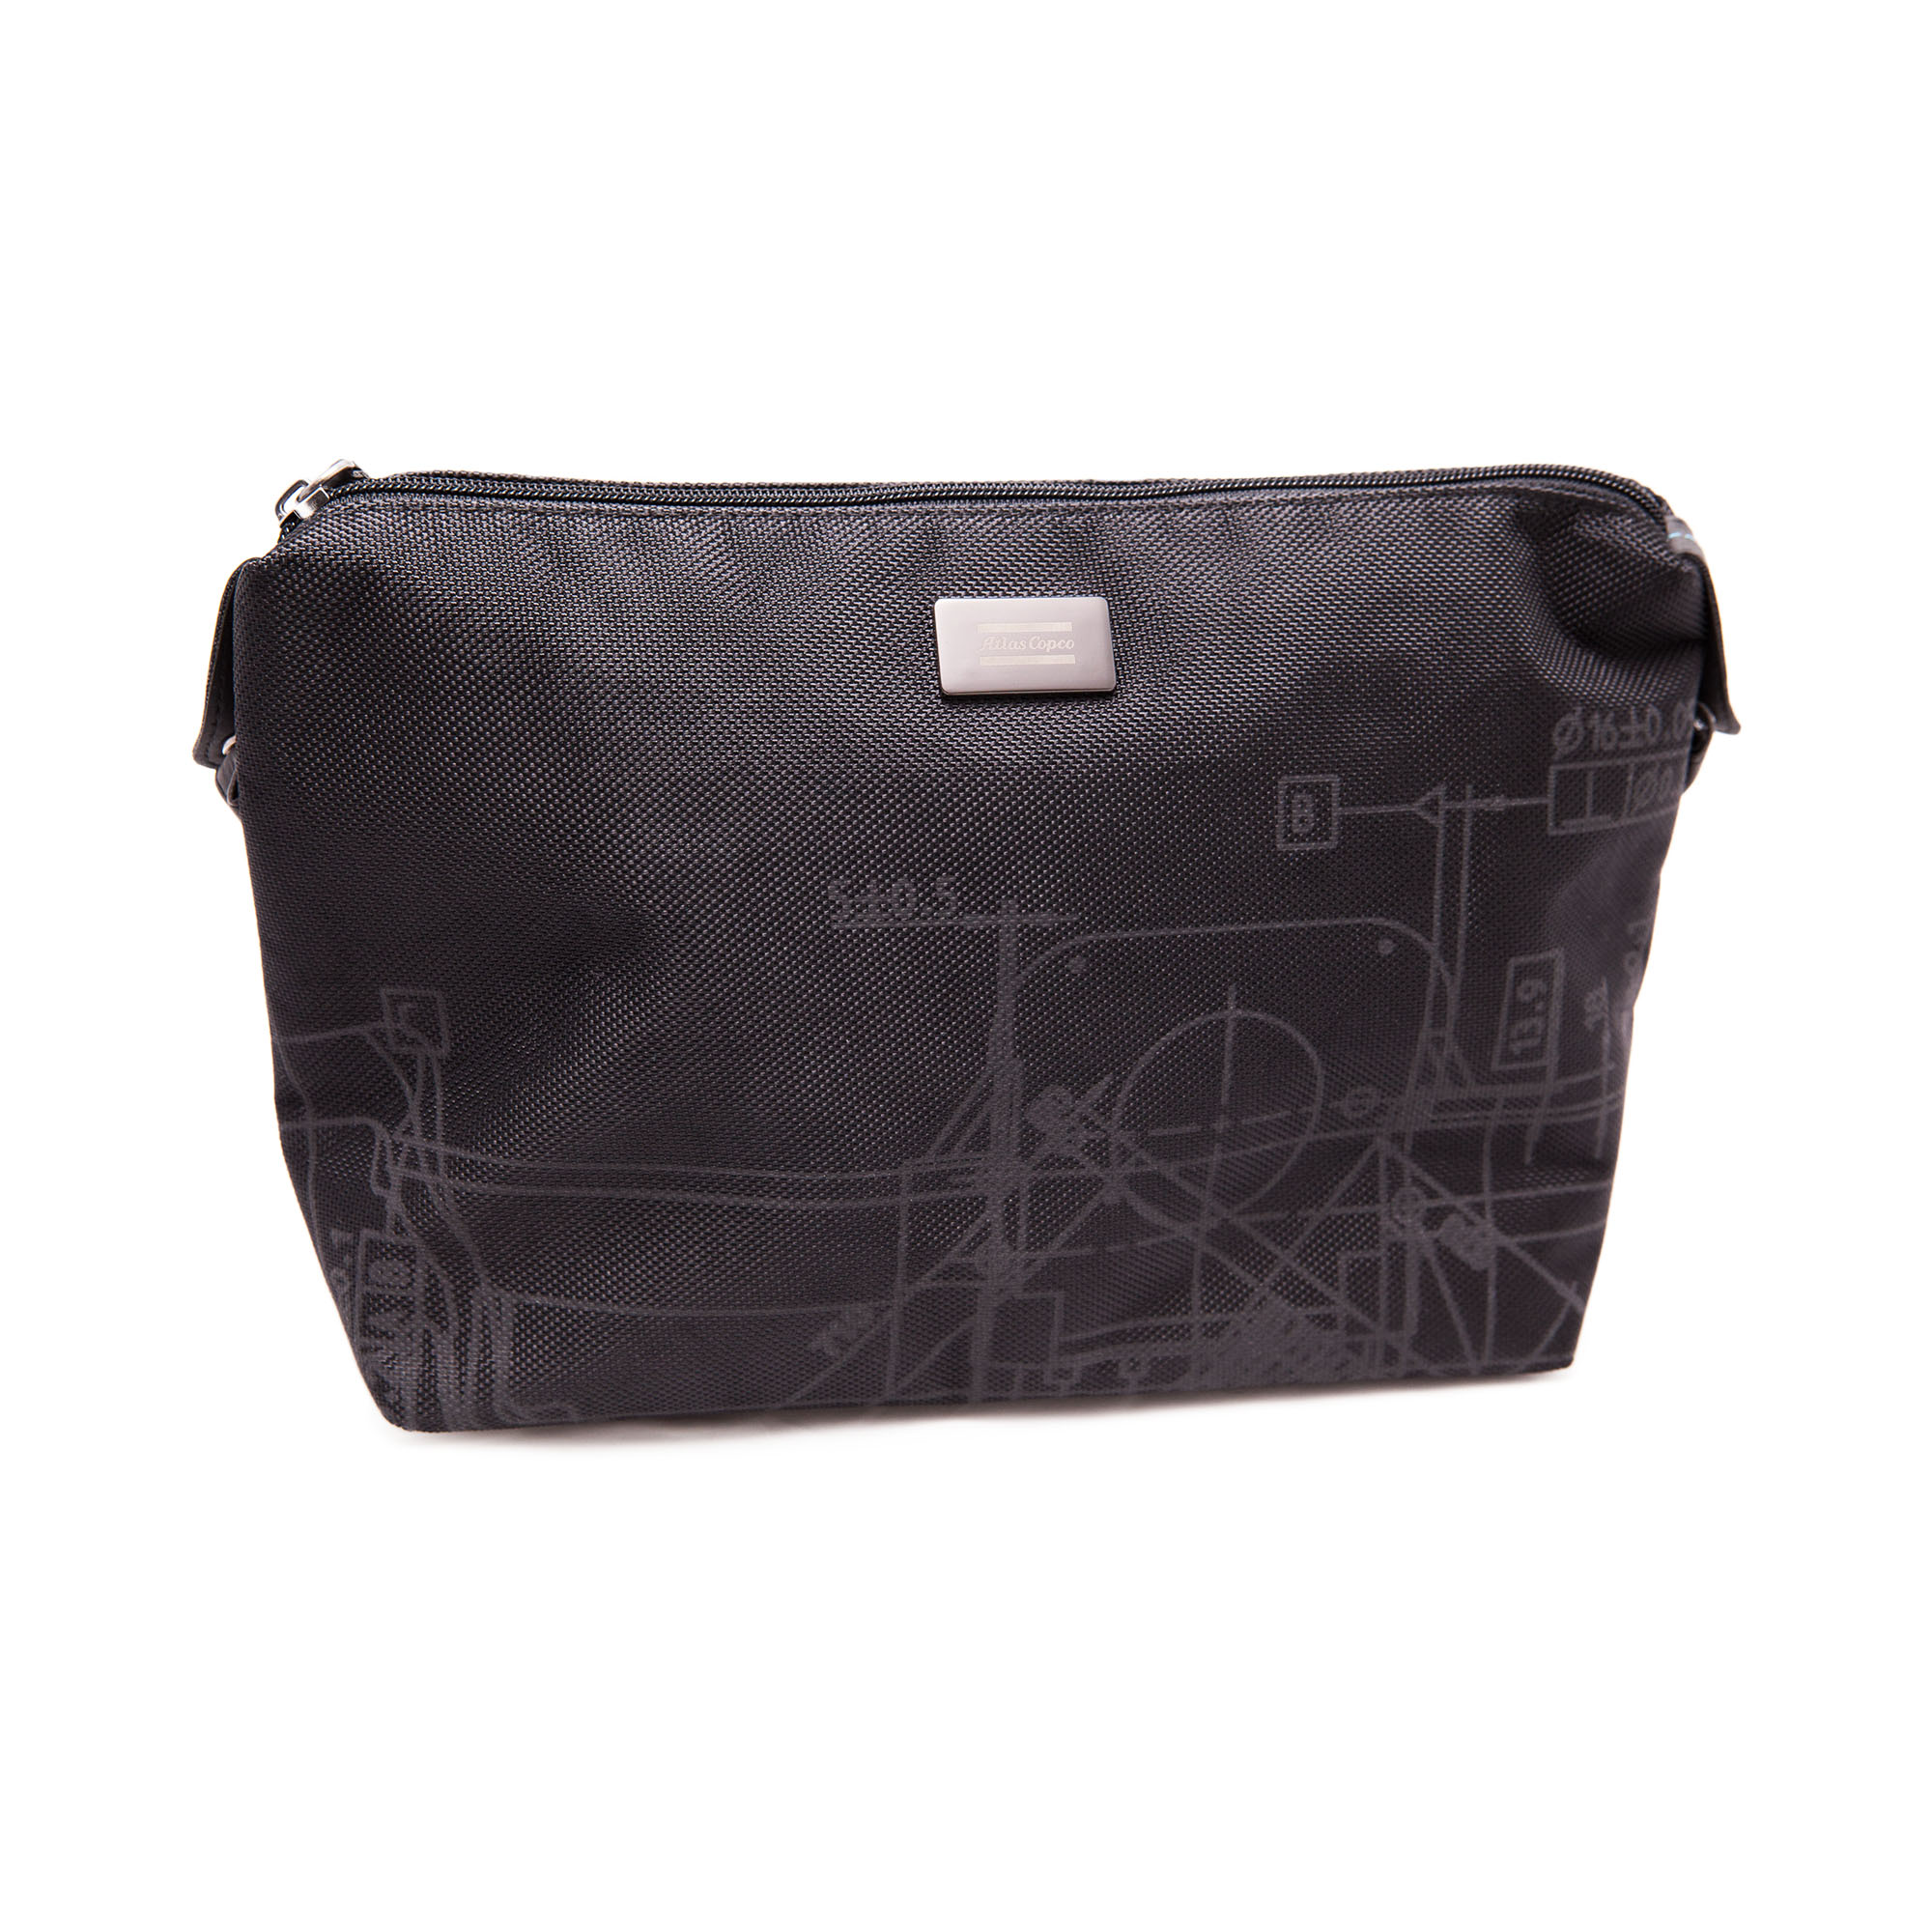 Toiletry bag with several useful carrying compartments. An ideal travel accessory if you're a frequent traveller and like to have dedicated accessories for different activities.